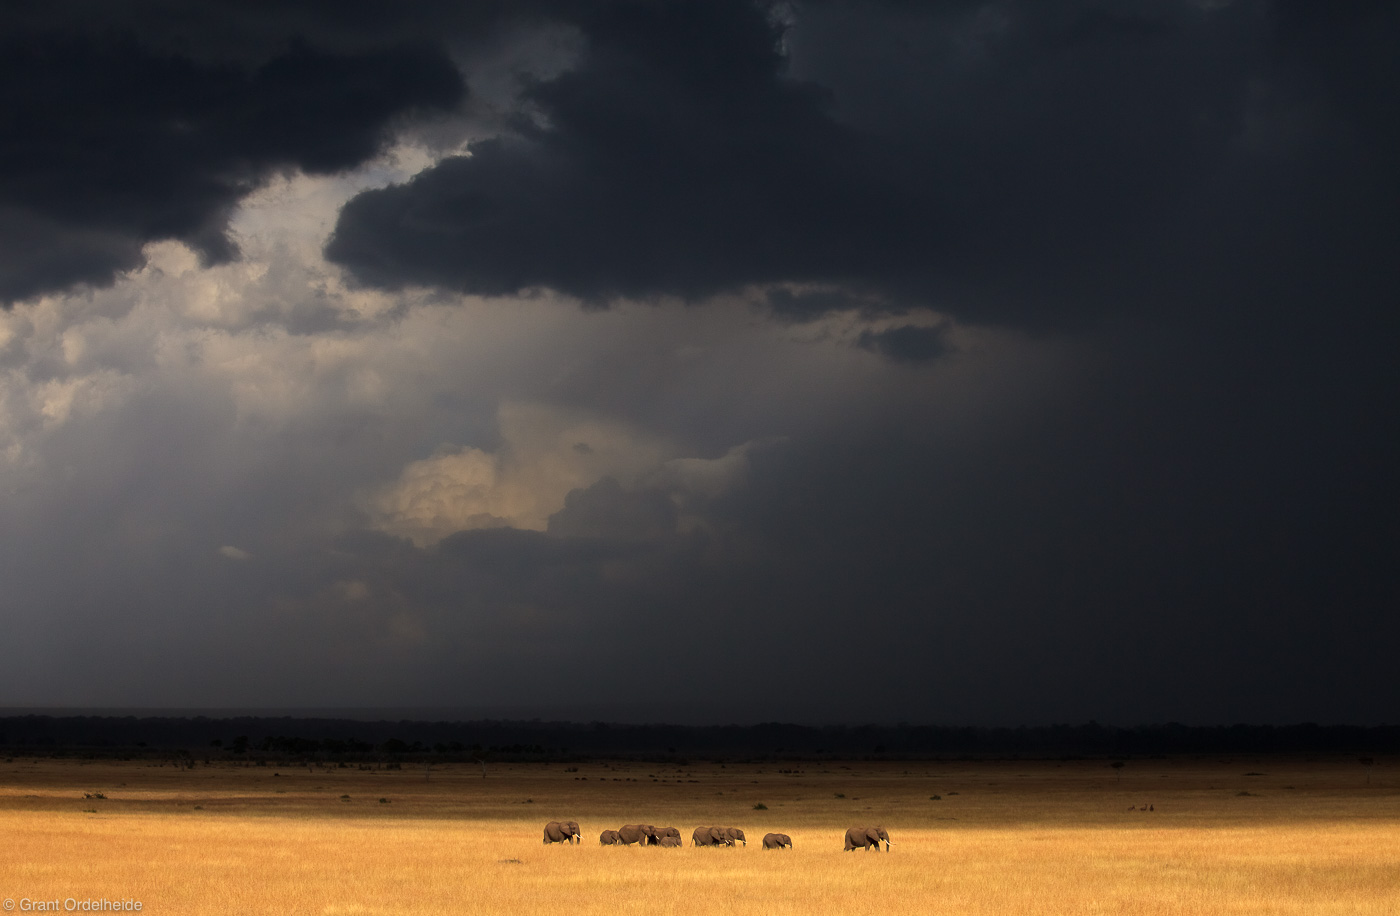 elephants, herd, approaching, storm, masai, mara, kenya, africa, torrential, storm, photo